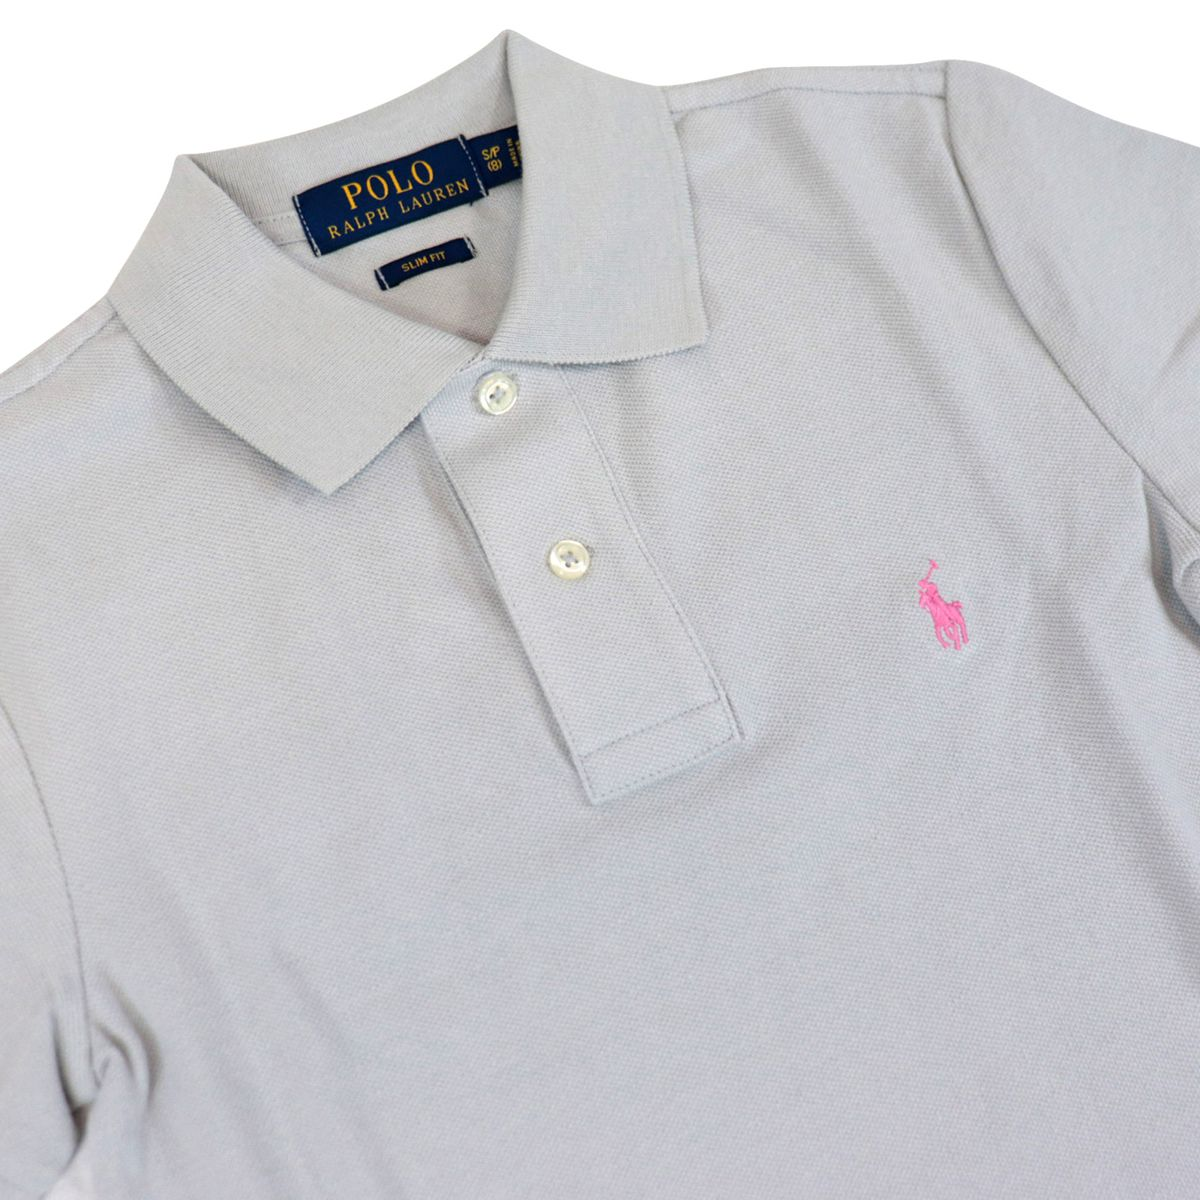 Custom fit polo shirt with contrasting logo embroidery Light smoke Polo Ralph Lauren